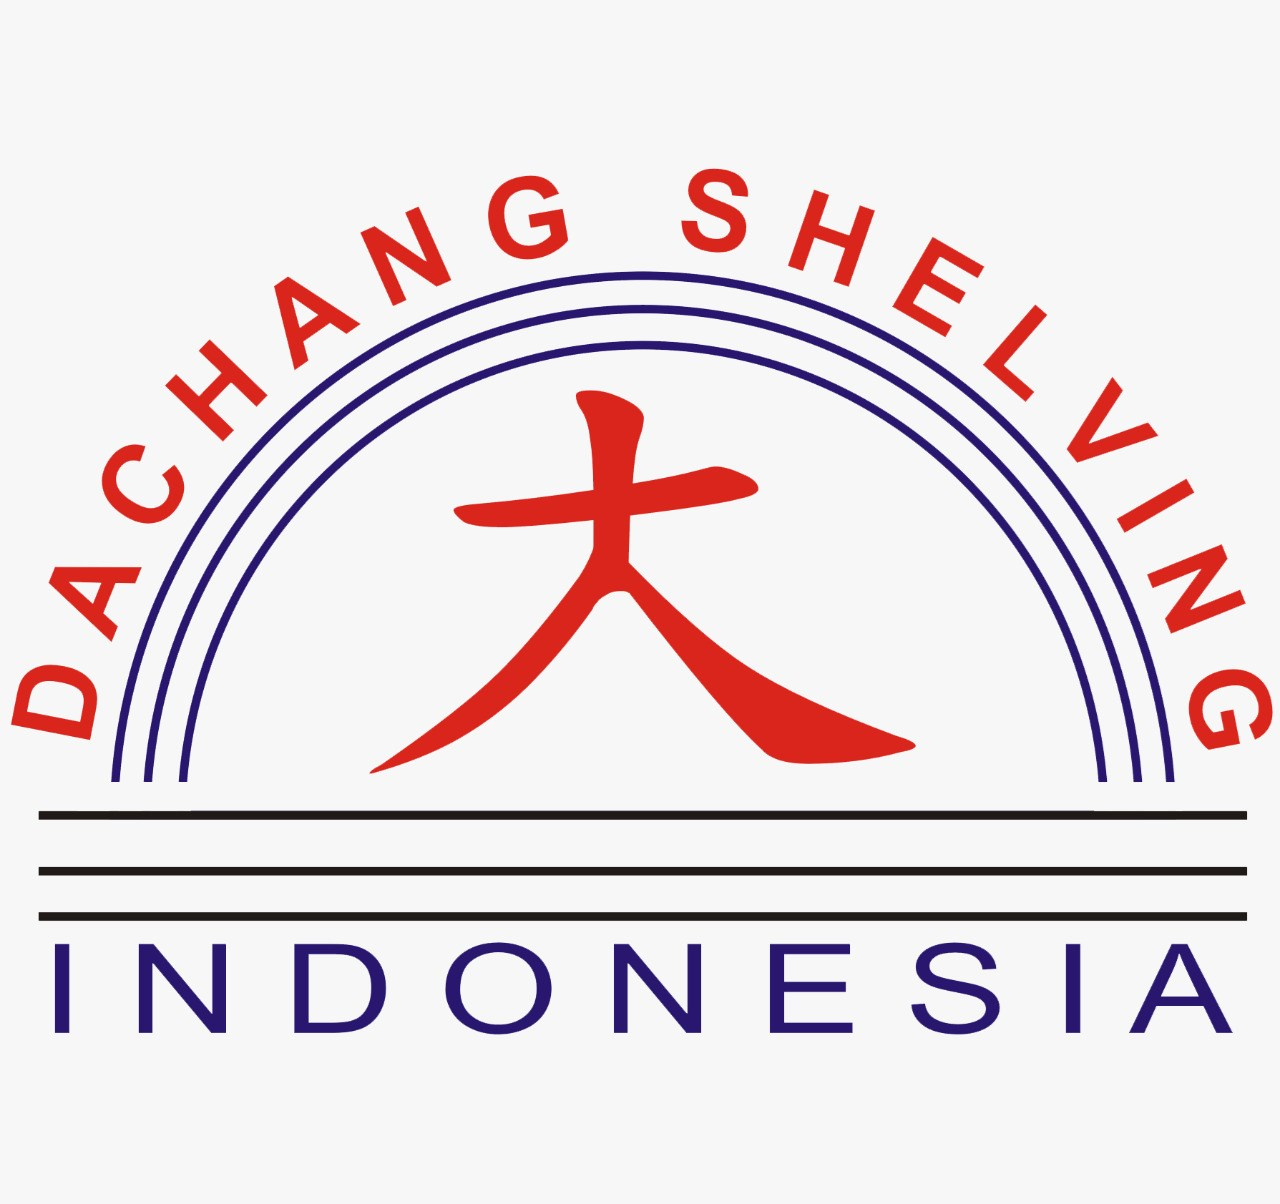 RAK DACHANG SHELVING INDONESIA